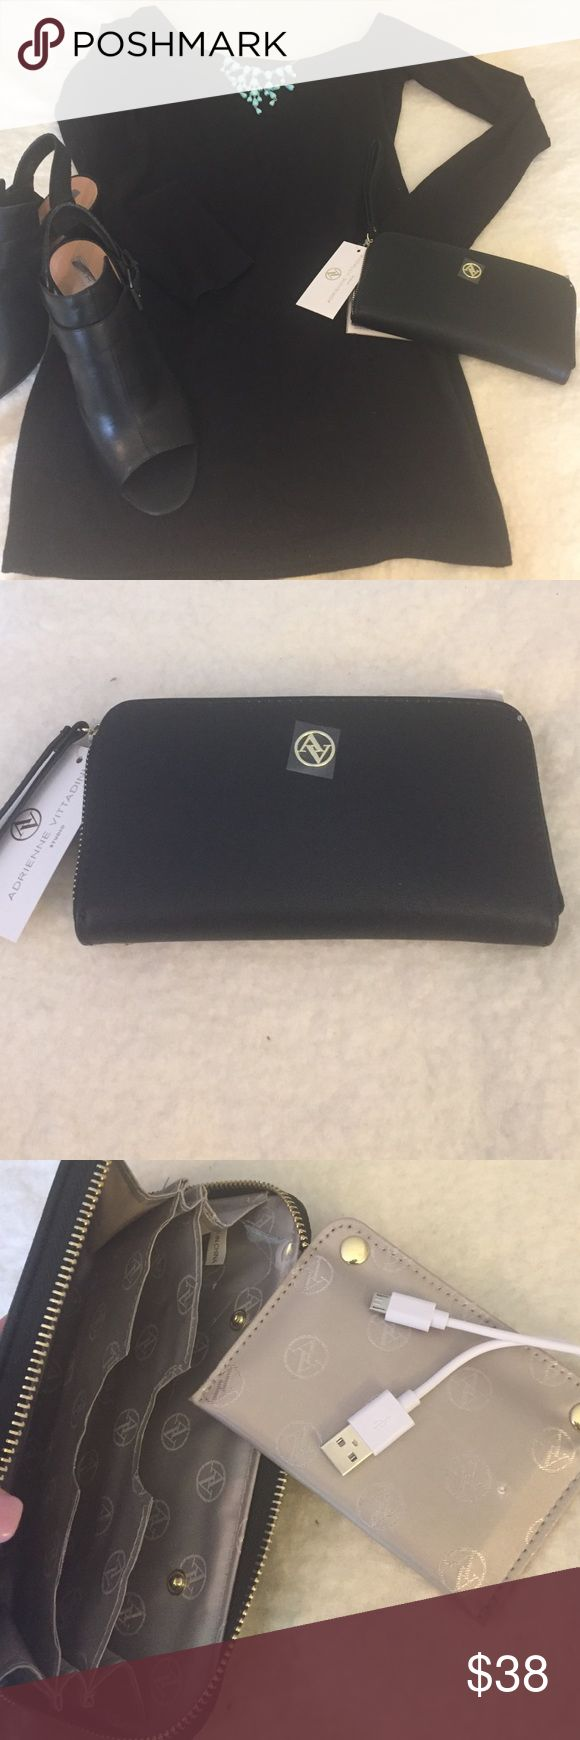 NWT- Adrienne Vittadini Charging Wallet Never worry about your phone running out of battery again with this Adrienne Vittadini wallet. The wallet has a removeable, reusable charging power bank. Works with IPhone 5/5s/6/6s. All this in a stylish designer wallet!! Adrienne Vittadini Bags Wallets